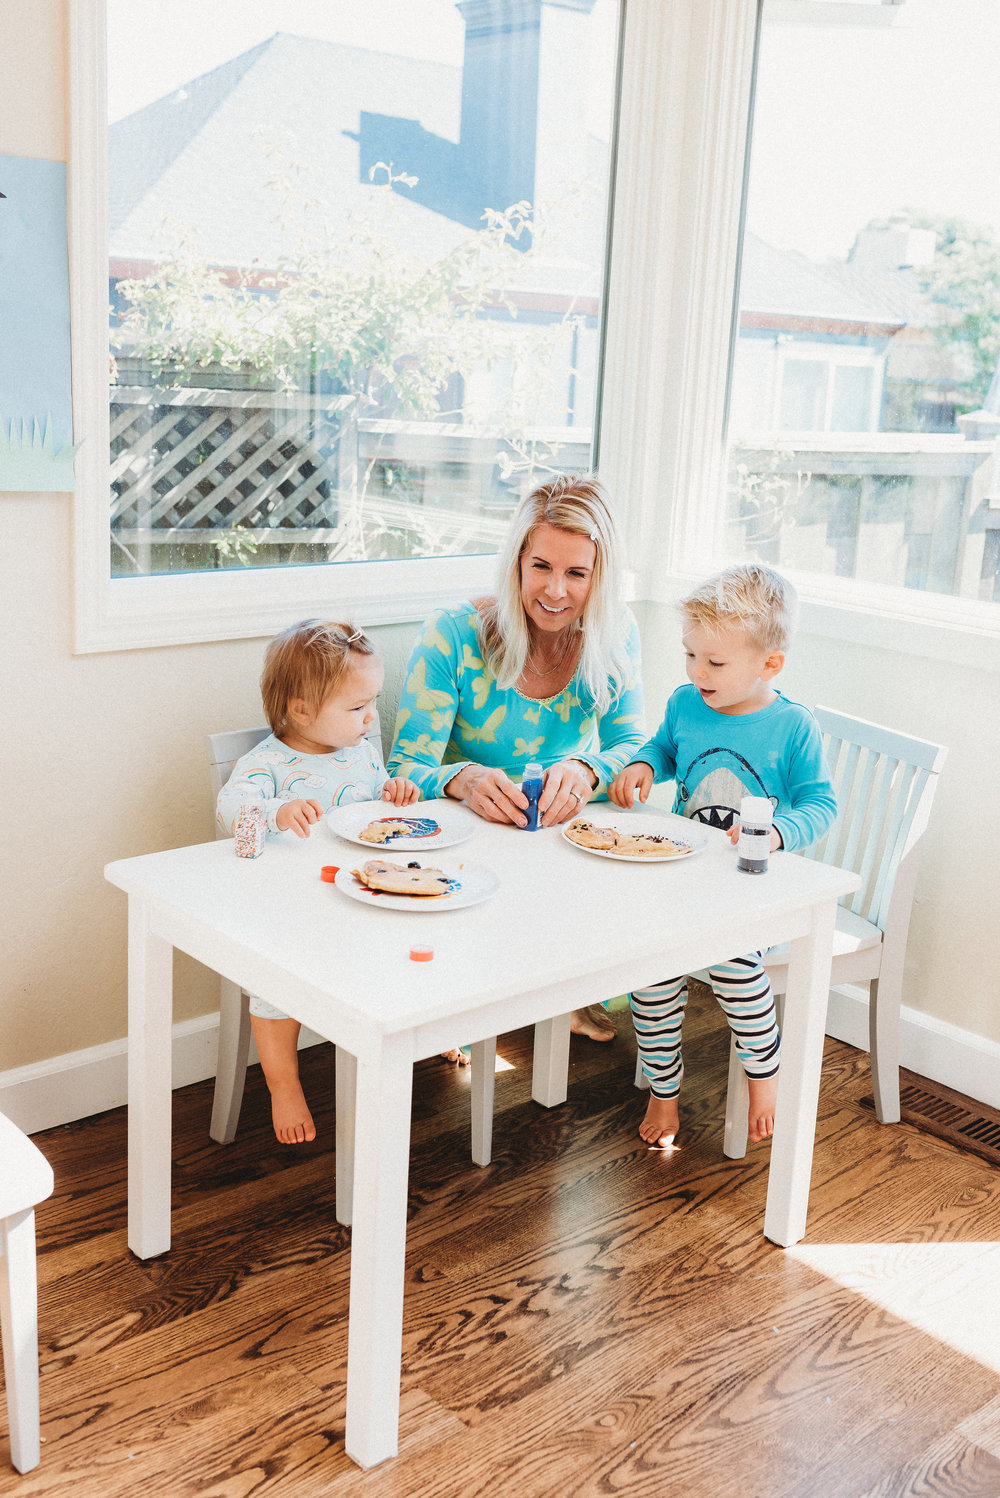 family pancakes morning routine mom of two toddlers pj mornings family time quality time34.jpg